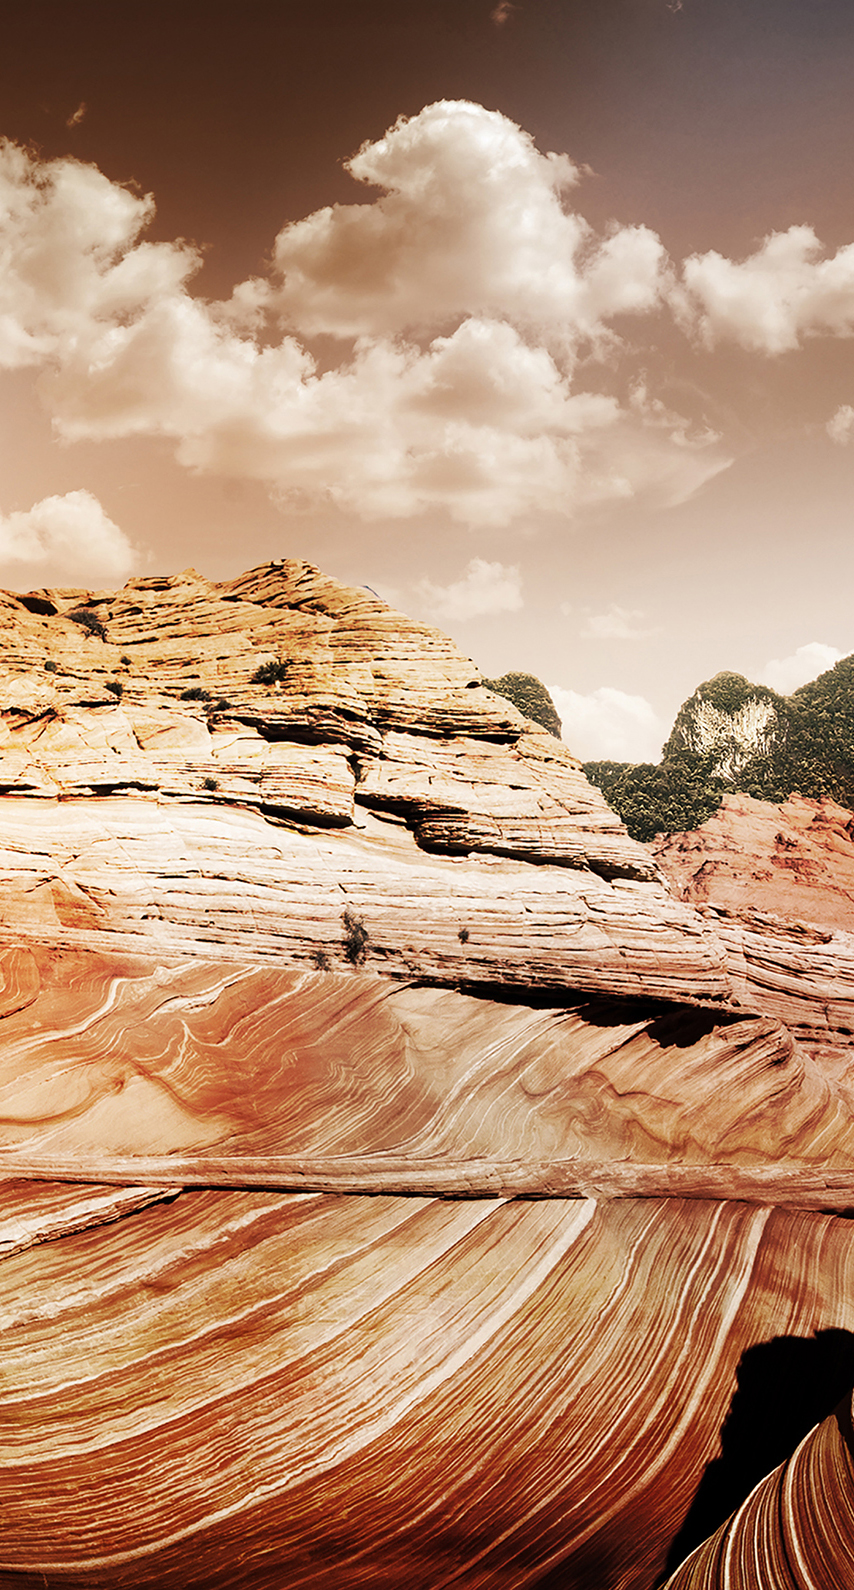 sand, canyon, park, sun, no person, dawn, color, outdoors, geology, dry, sandstone, erosion